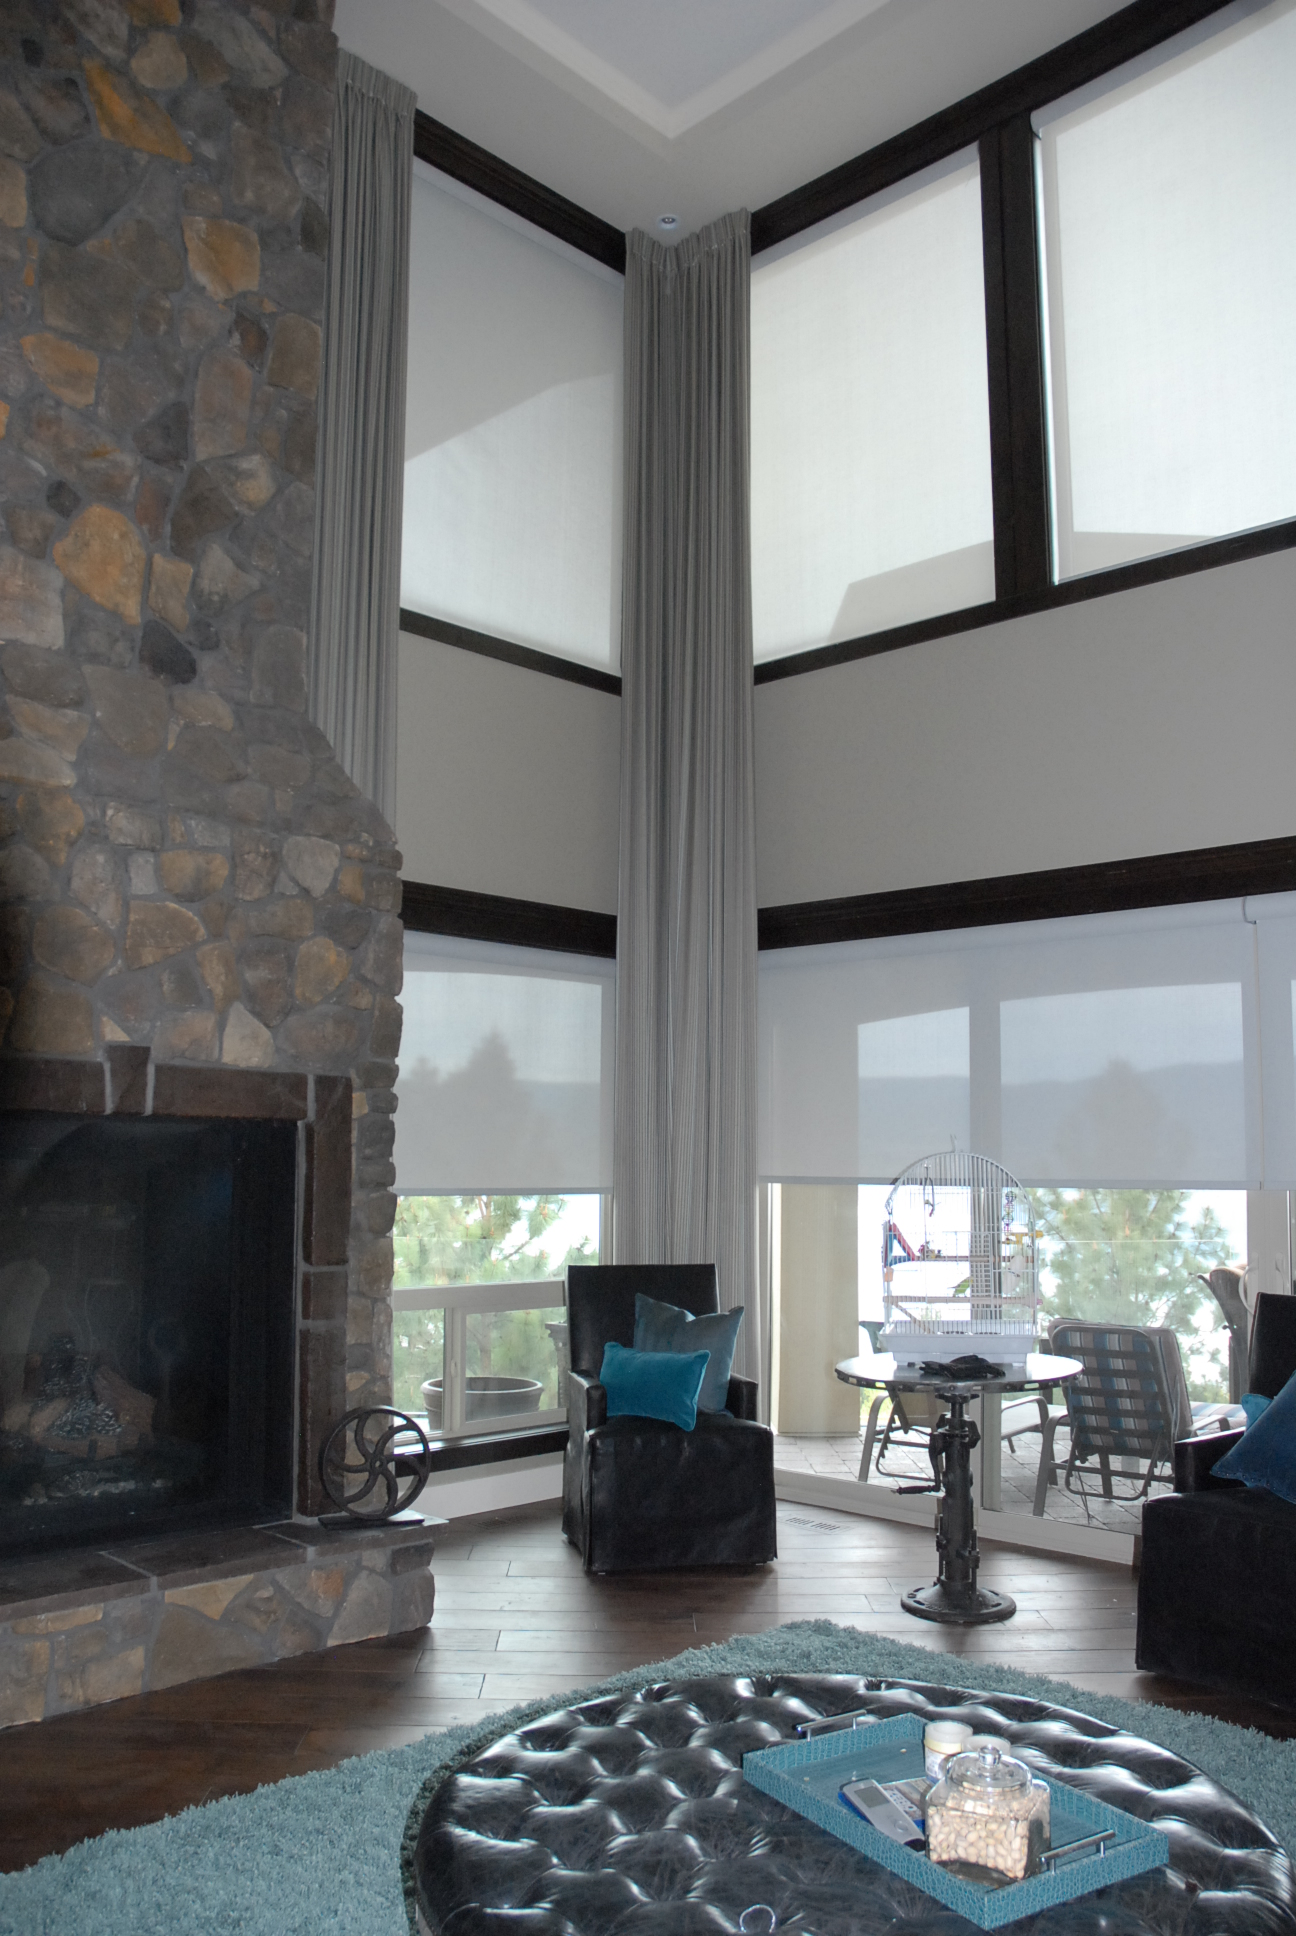 Motorized Rollershades with Floor to Ceiling Drapery | The Well Dressed Window - Hunter Douglas Blinds